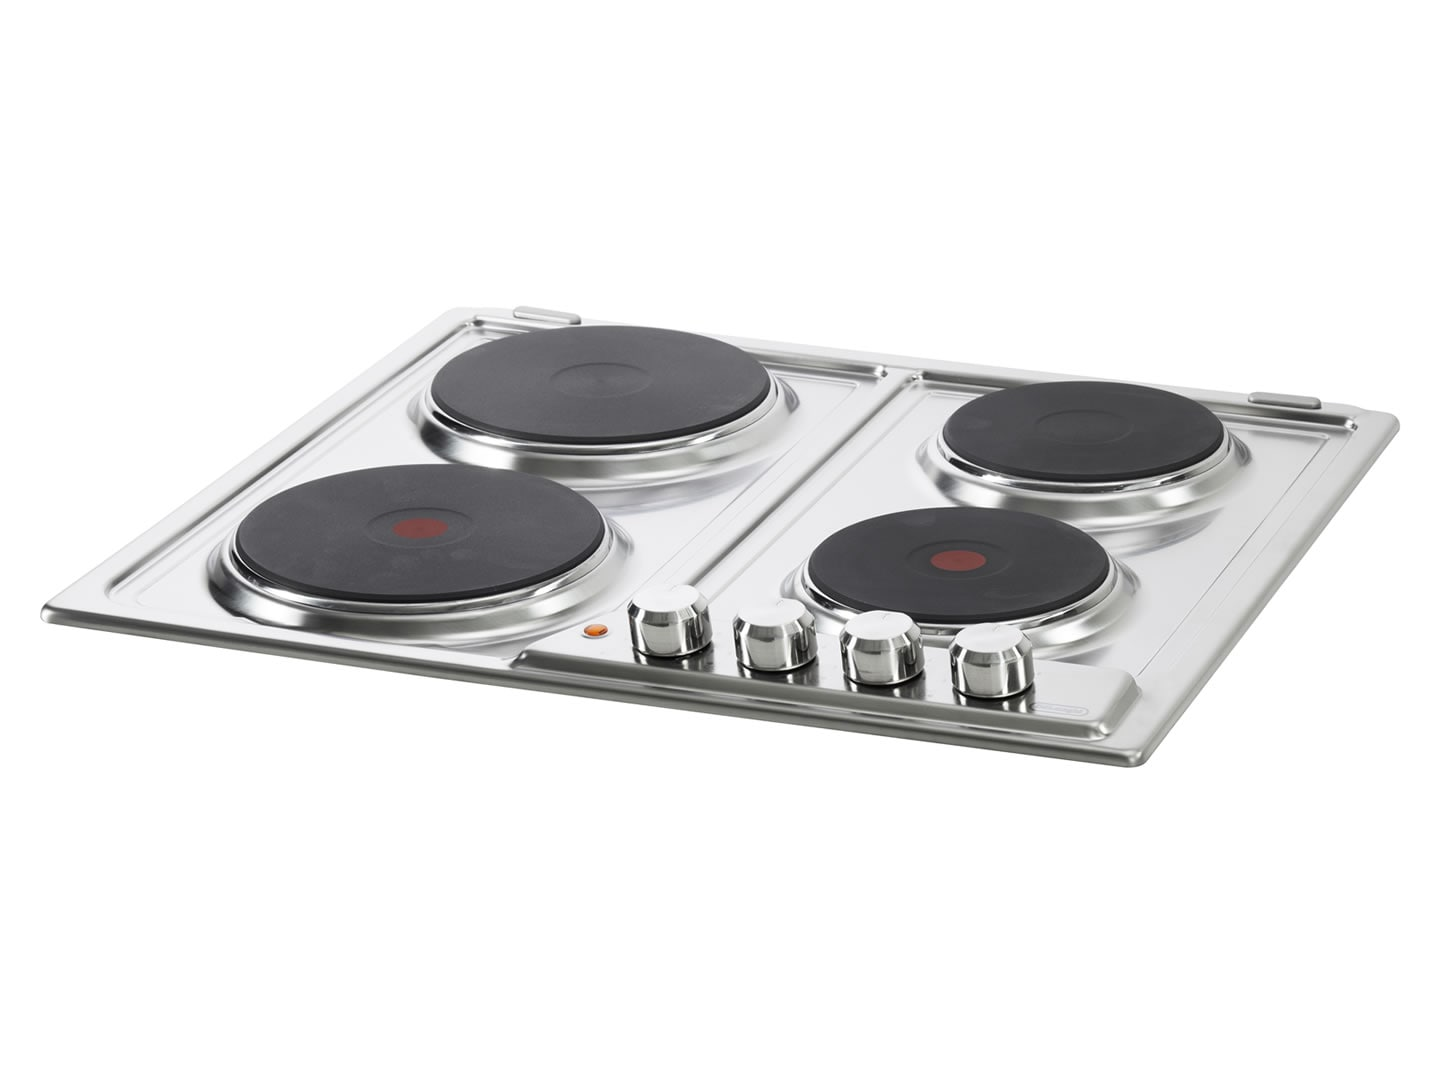 60cm 4 Zone Electric Cooktop Stainless Steel DEH60SX1